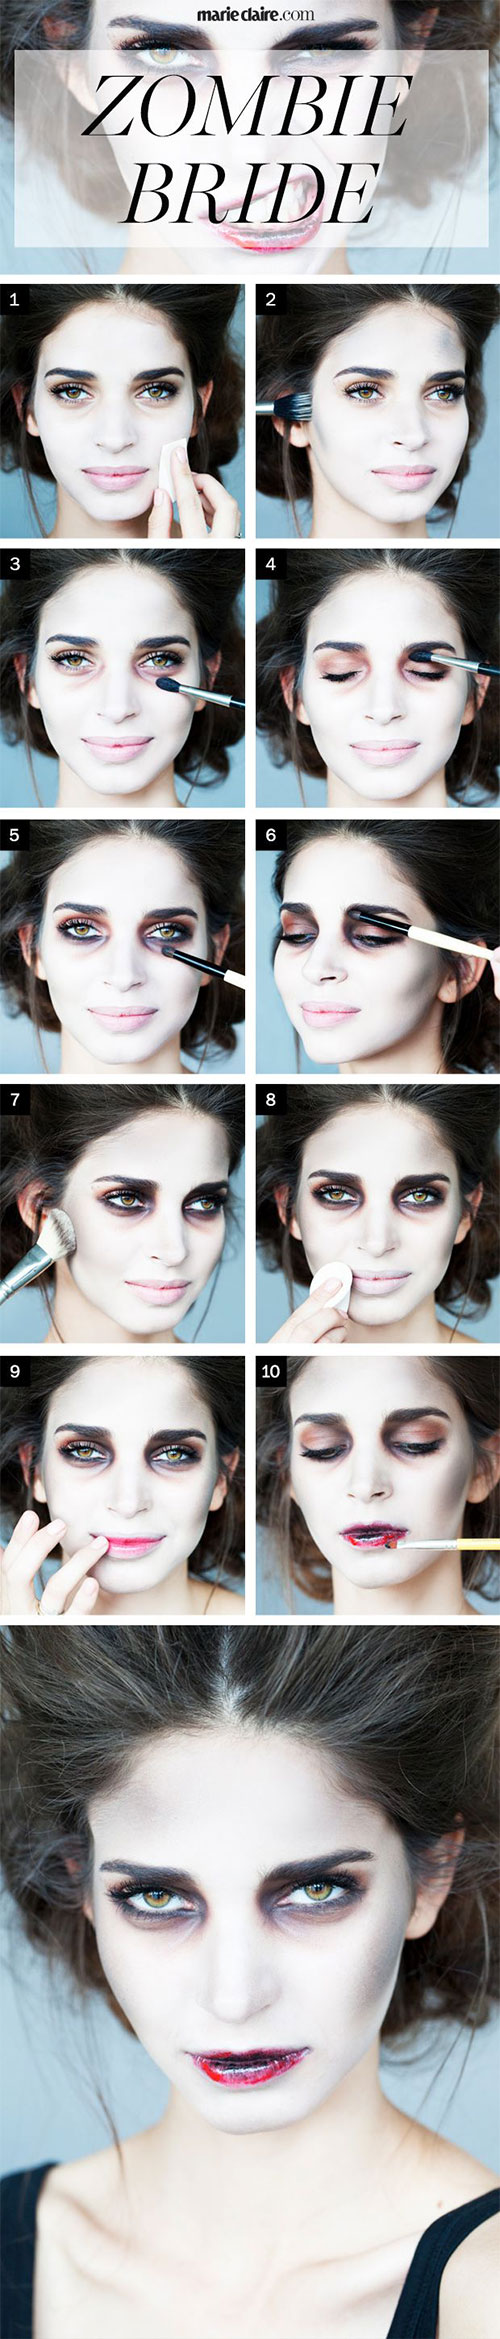 15-Best-Easy-Halloween-Makeup-Tutorials-For-Beginners-Learners-2015-10